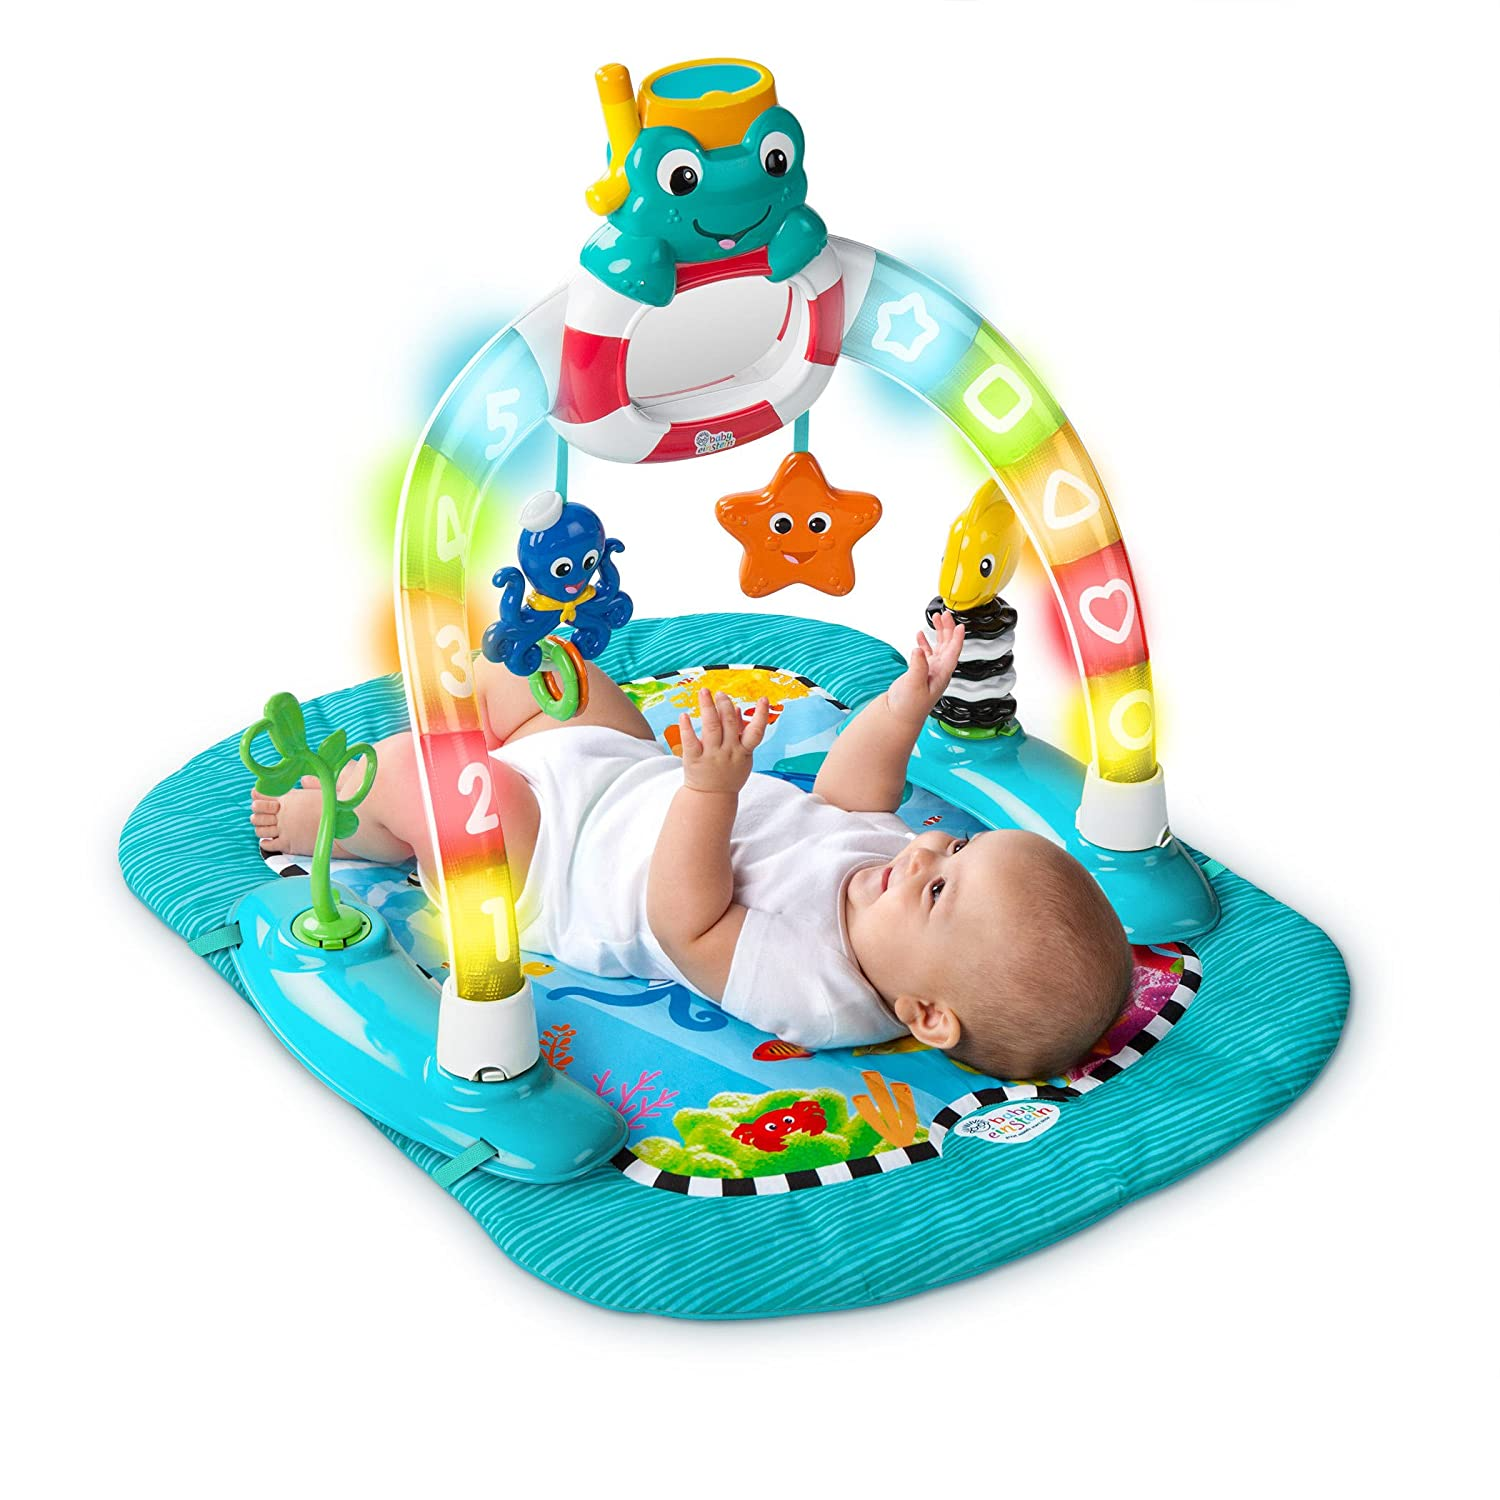 Baby einstein animal discovery cards toys amp games on popscreen - Amazon Com Baby Einstein 2 In 1 Lights Sea Activity Gym Saucer Baby